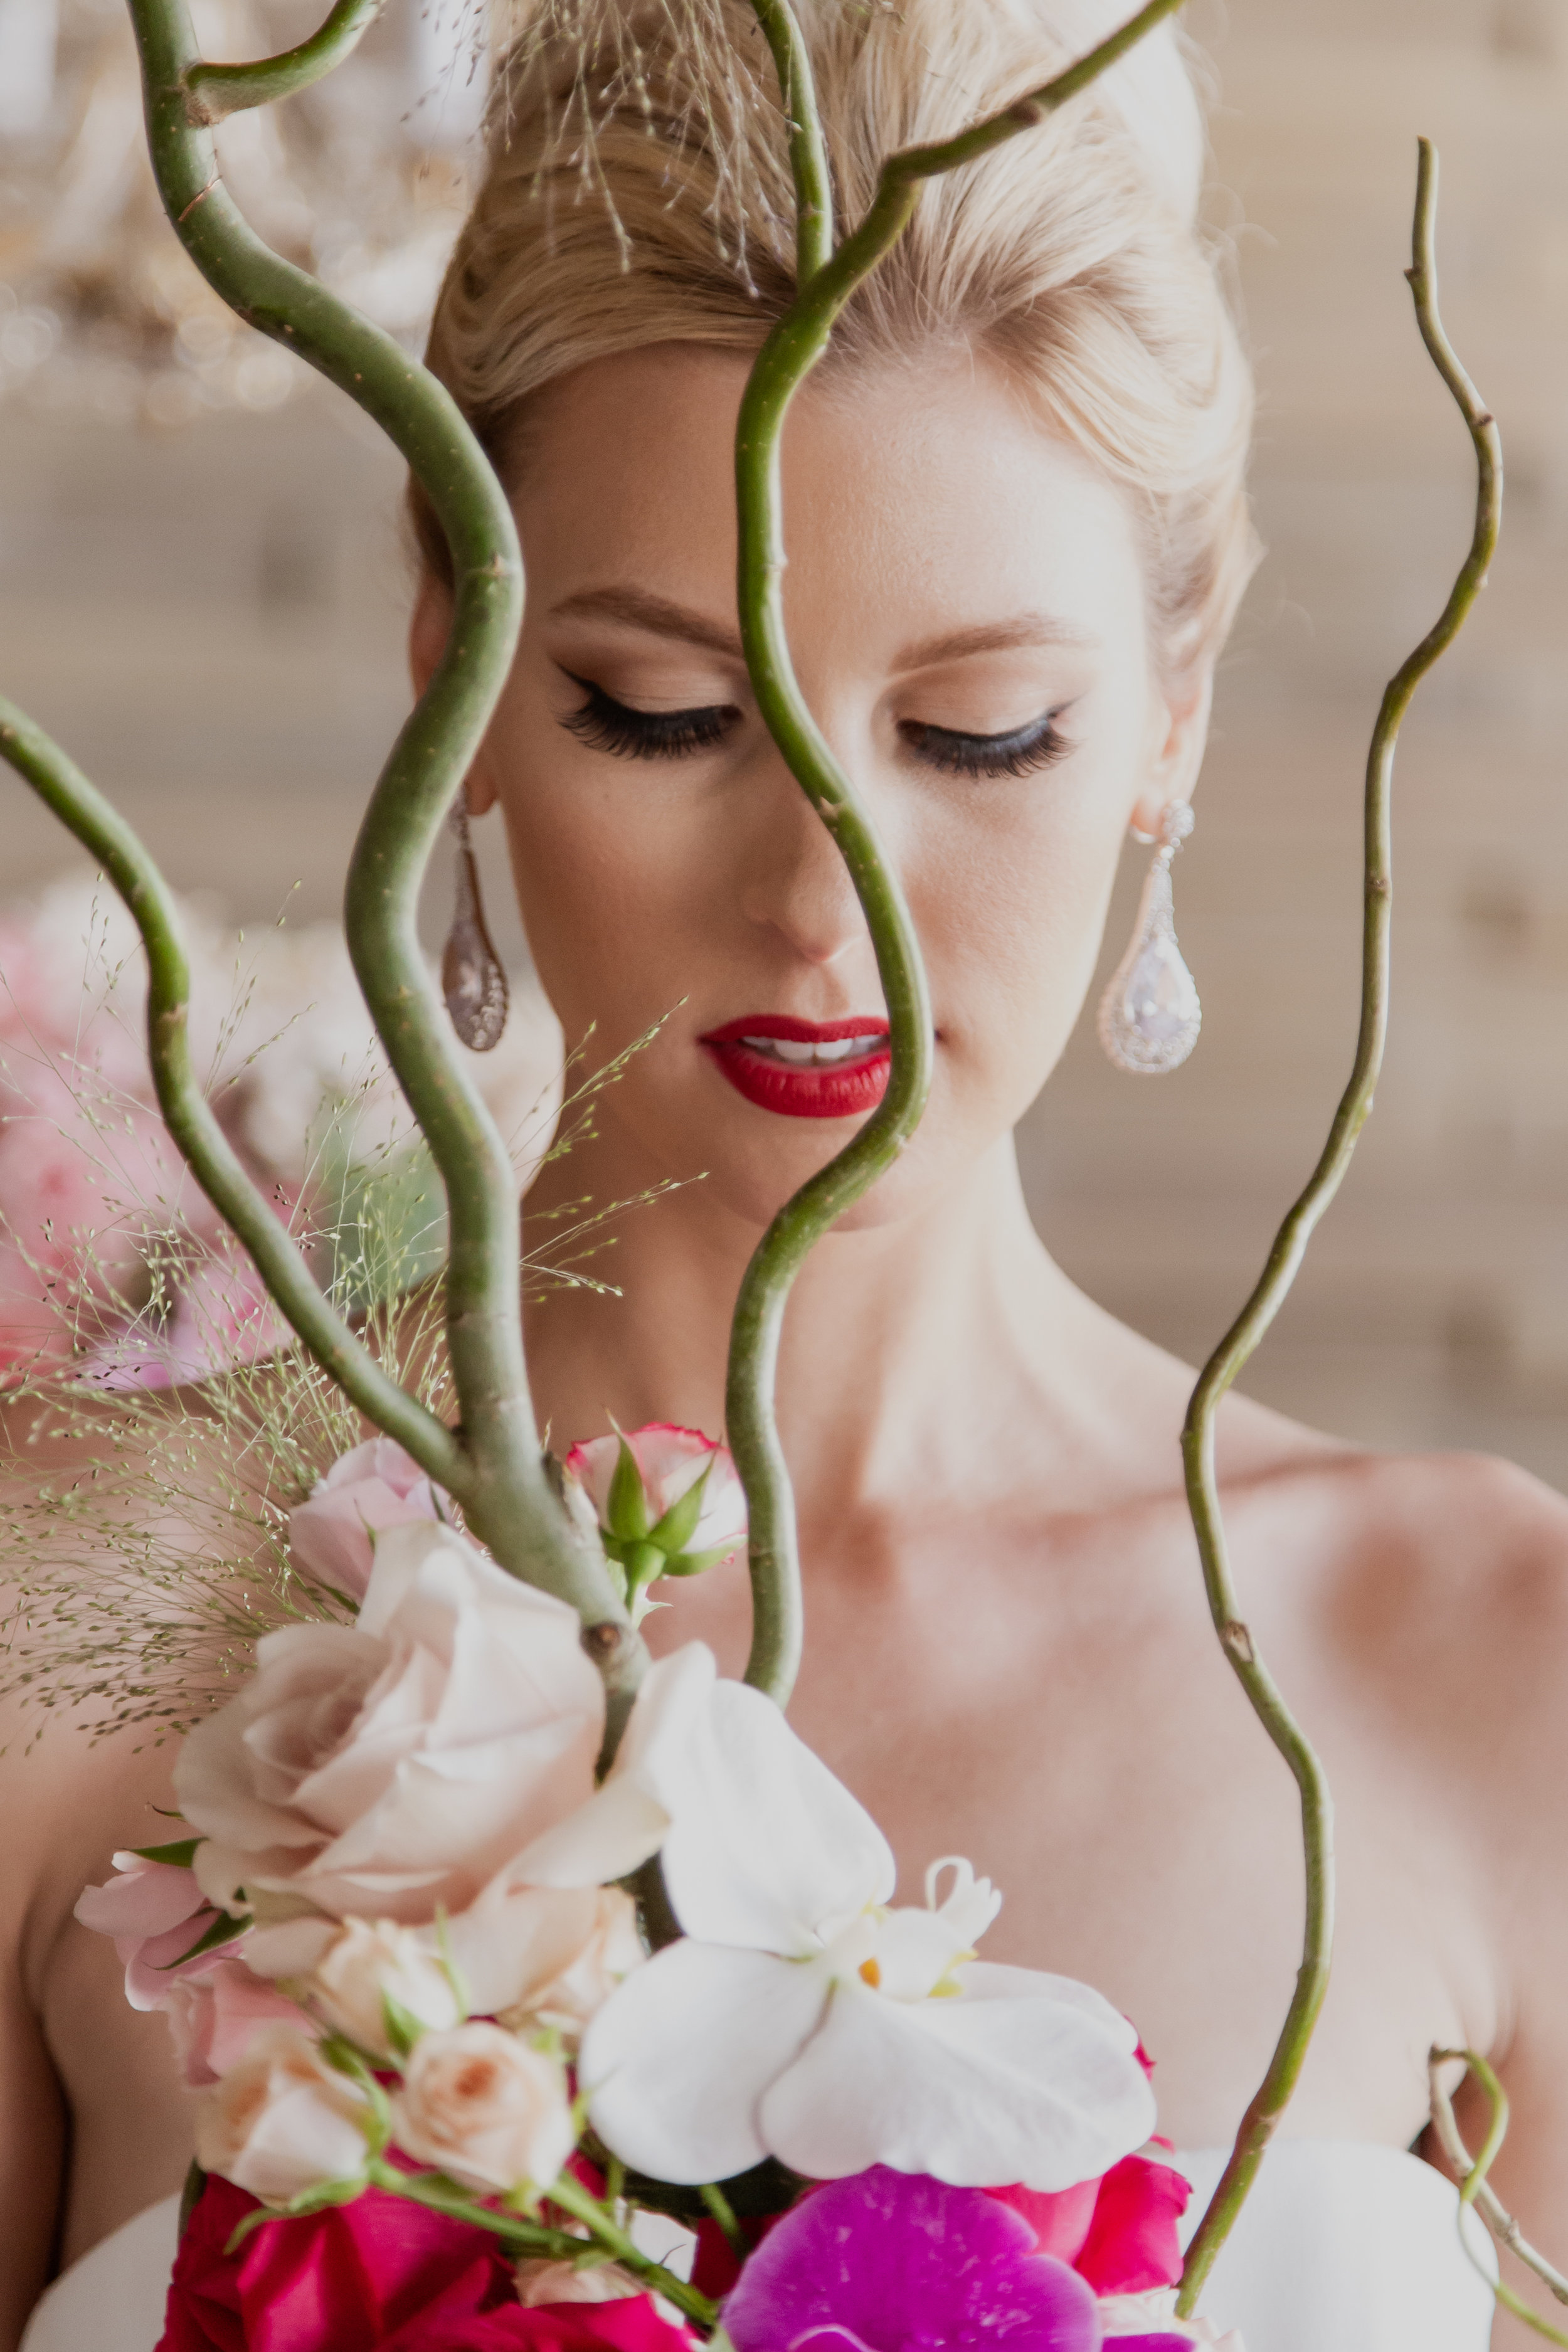 Bridal portrait through staff vines. Las Vegas Wedding Planner & Event Designer  Andrea Eppolito Events  · Photography by  Adam Frazier Photo  · Video by  M Place Productions  · Floral & Decor by  DBD Las Vegas  · Venue  ARIA Primrose Ballroom  · Cigar Band by  Royal Cigar Company  and  Jason of Beverly Hills  · Beauty by  Glammed Up Las Vegas  · Dress by  Vera Wang  · Salon  Couture Bride Las Vegas  · Shoes  Bella Belle Shoes  · Bride  Katrina May Armenta  · Groom  Lucas Cuevas